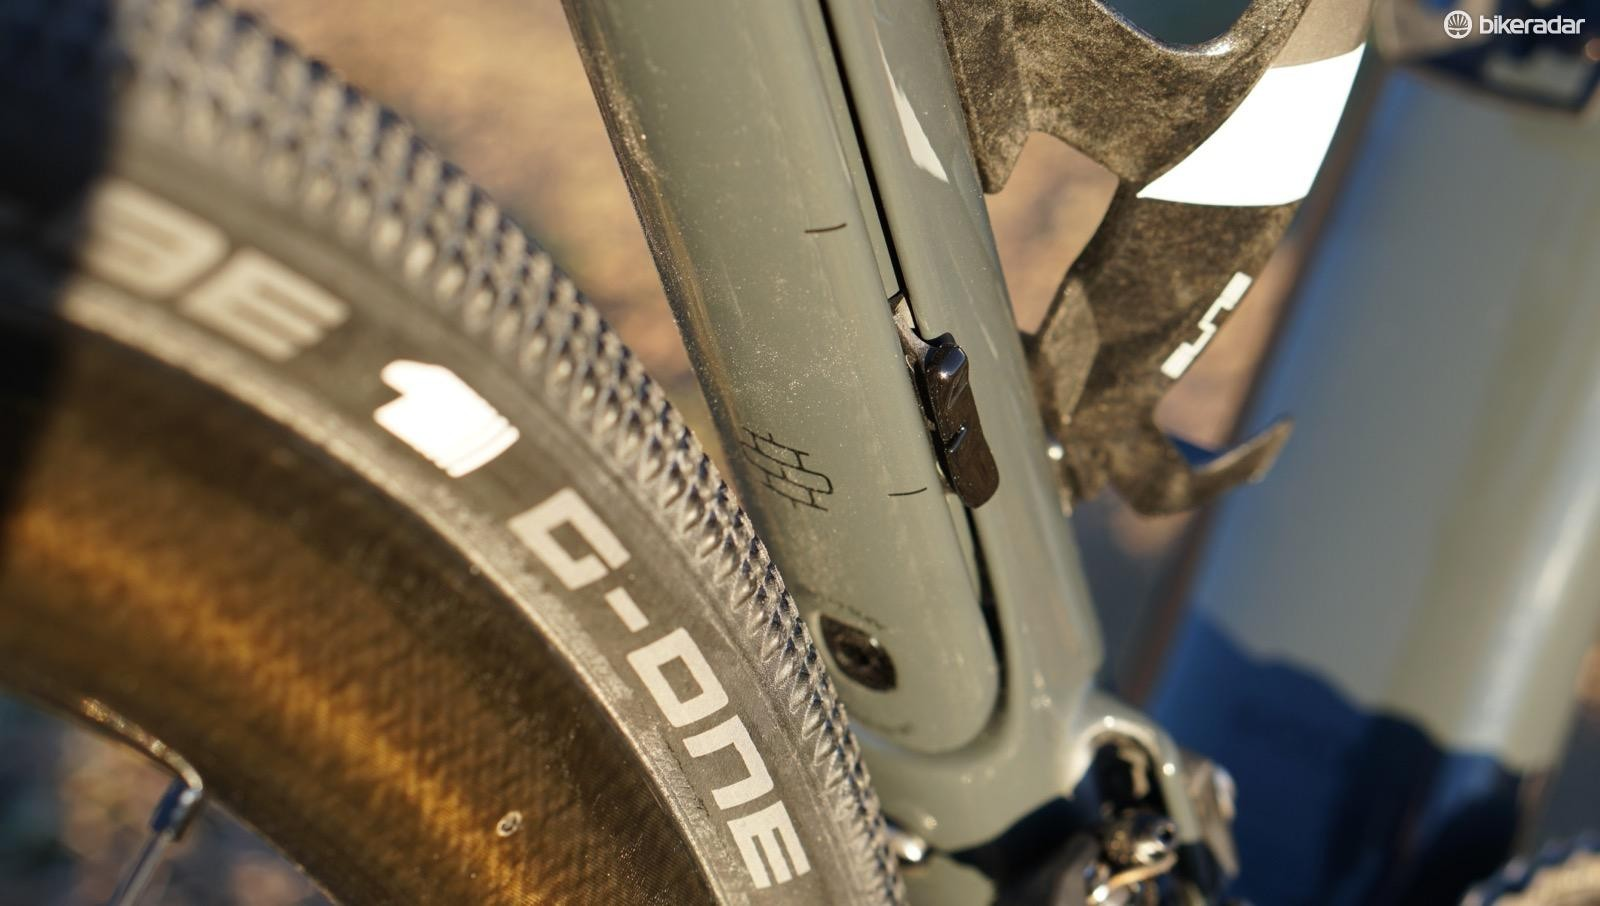 This Domane SLR features adjustable rear isospeed. But shouldn't there be a little gravel rock icon instead of cobbles?